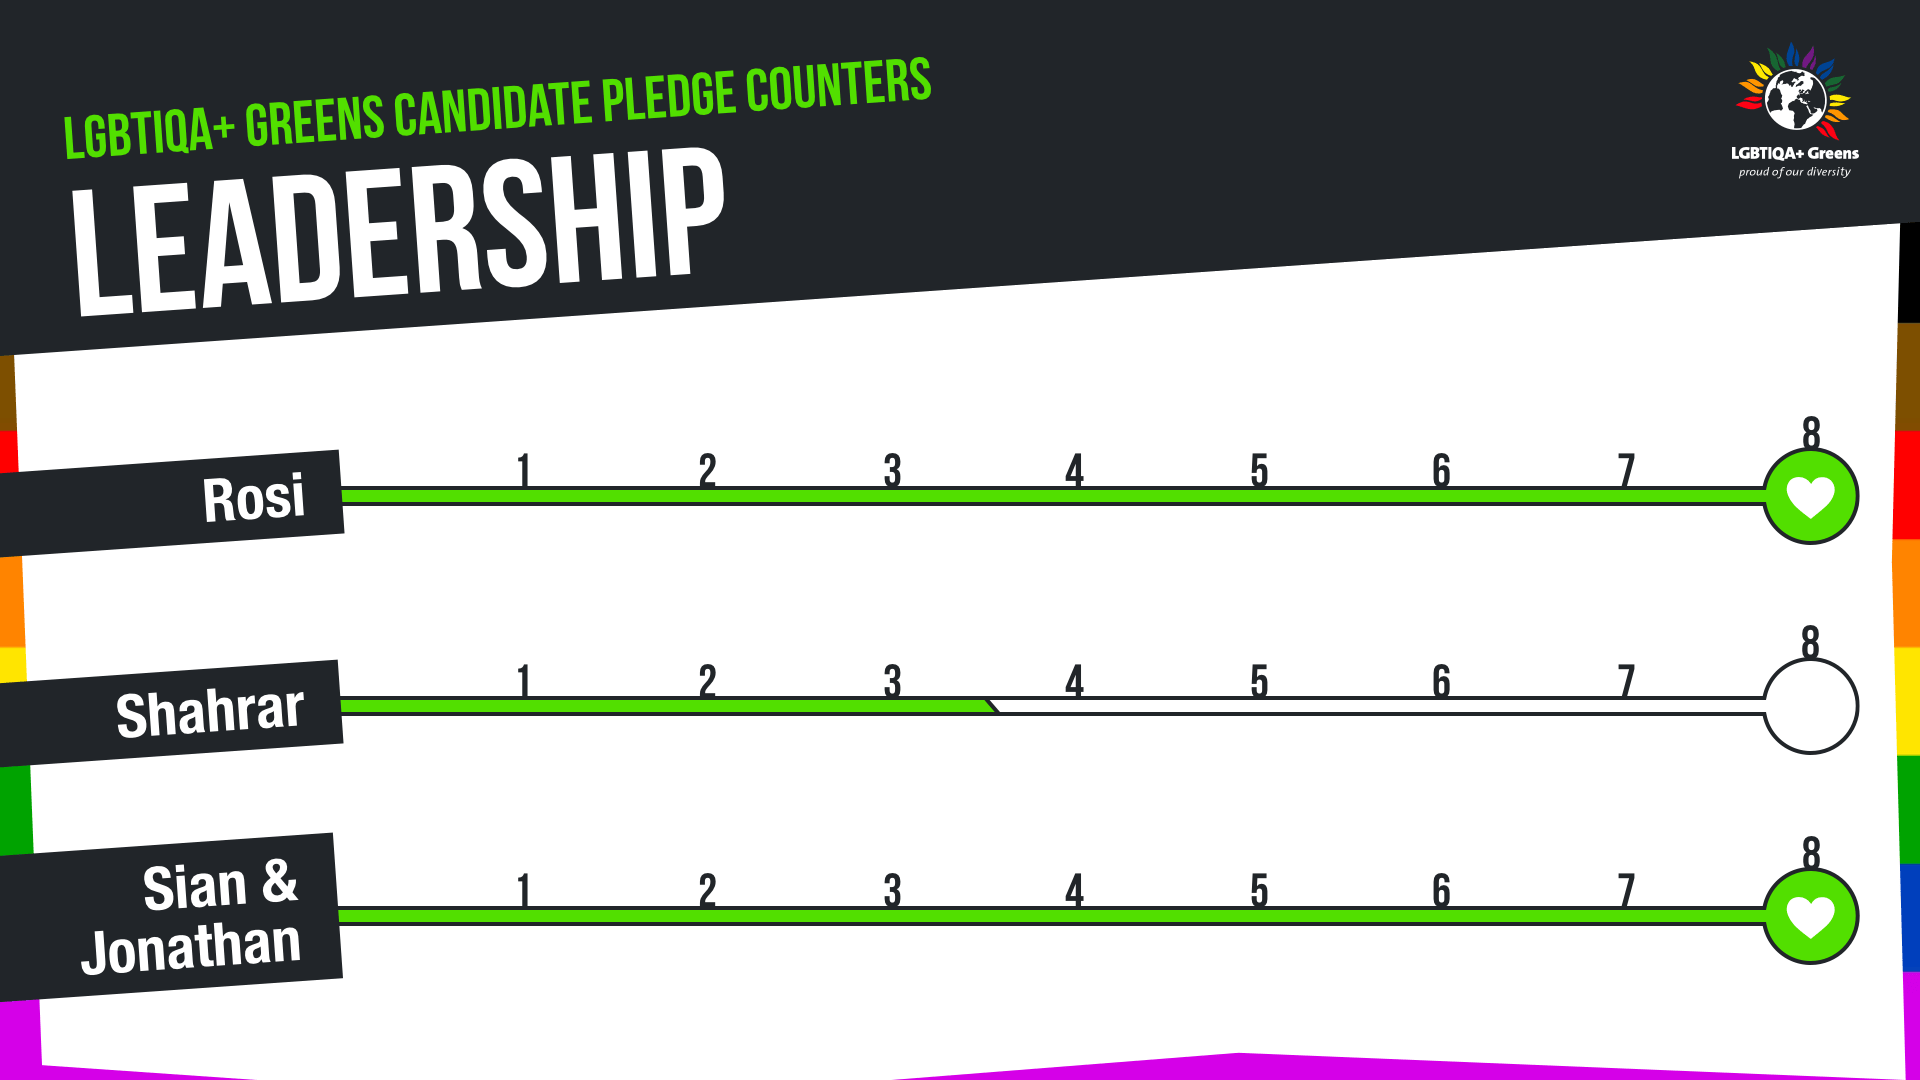 The scores for leaders are: Shahrar 4, Rosi 8 and Sian and Jonathan 8